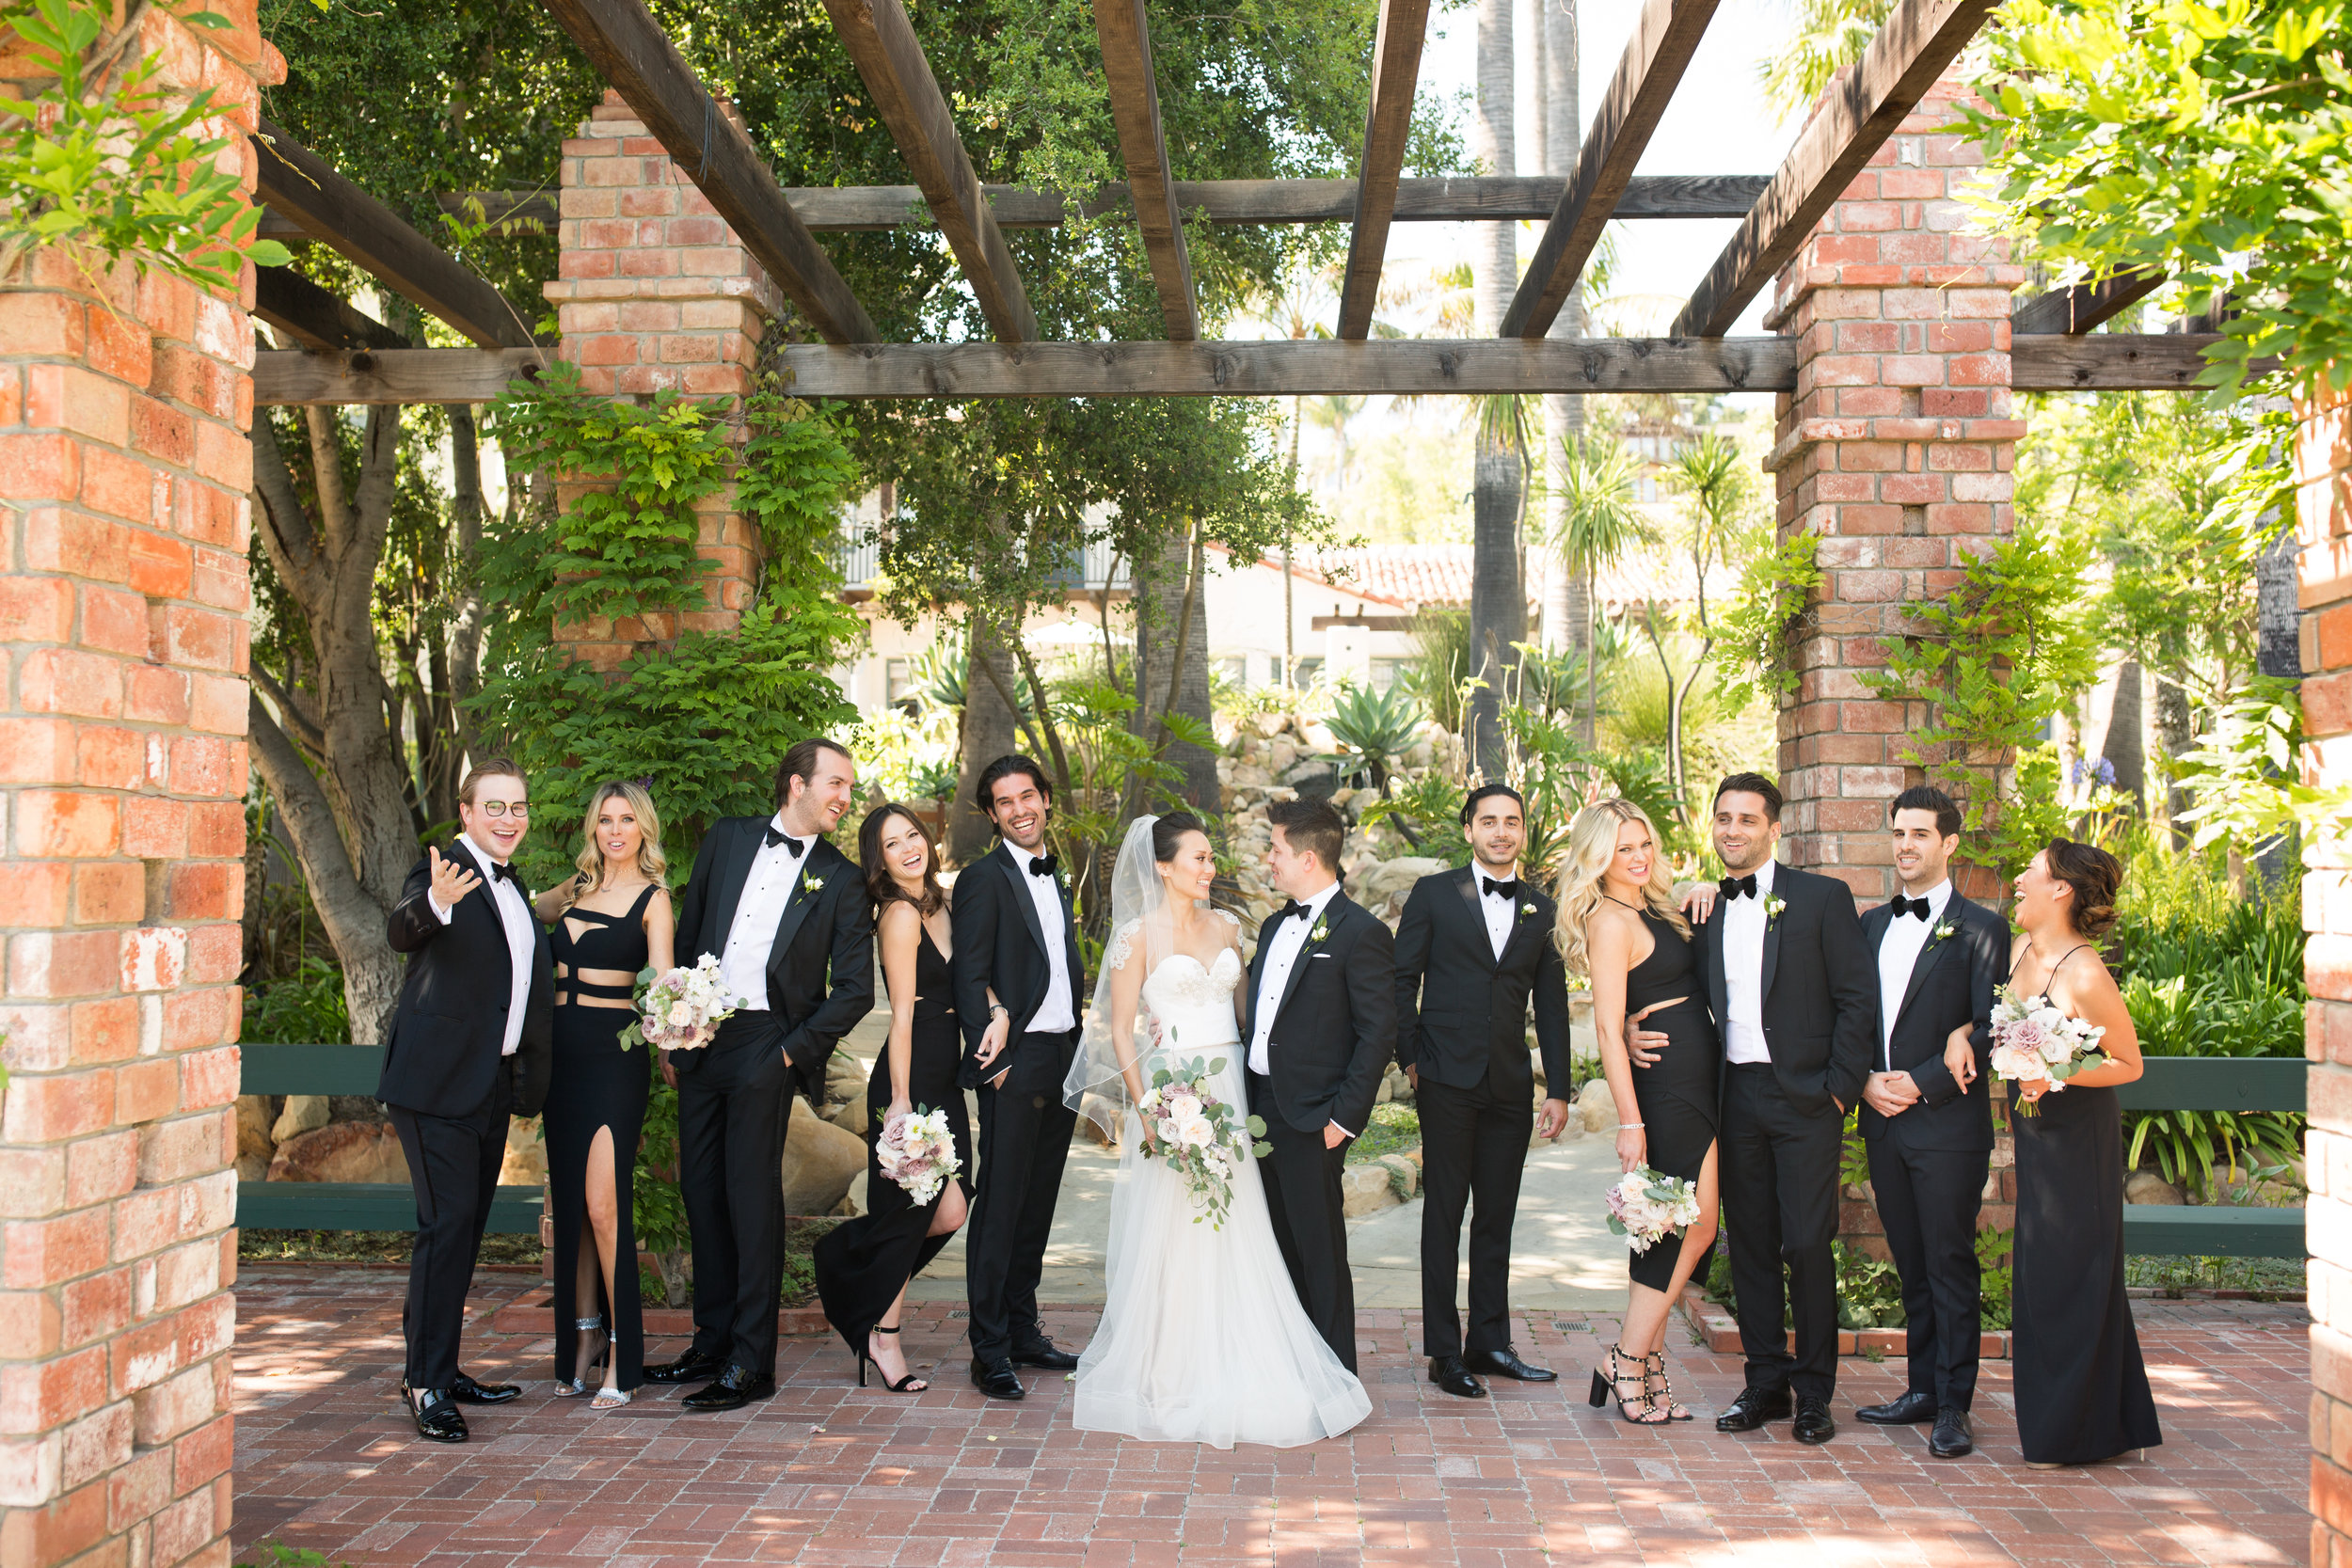 A Belmond El Encanto Santa Barbara Wedding - The Overwhelmed Bride Wedding Ideas Inspiration Blog